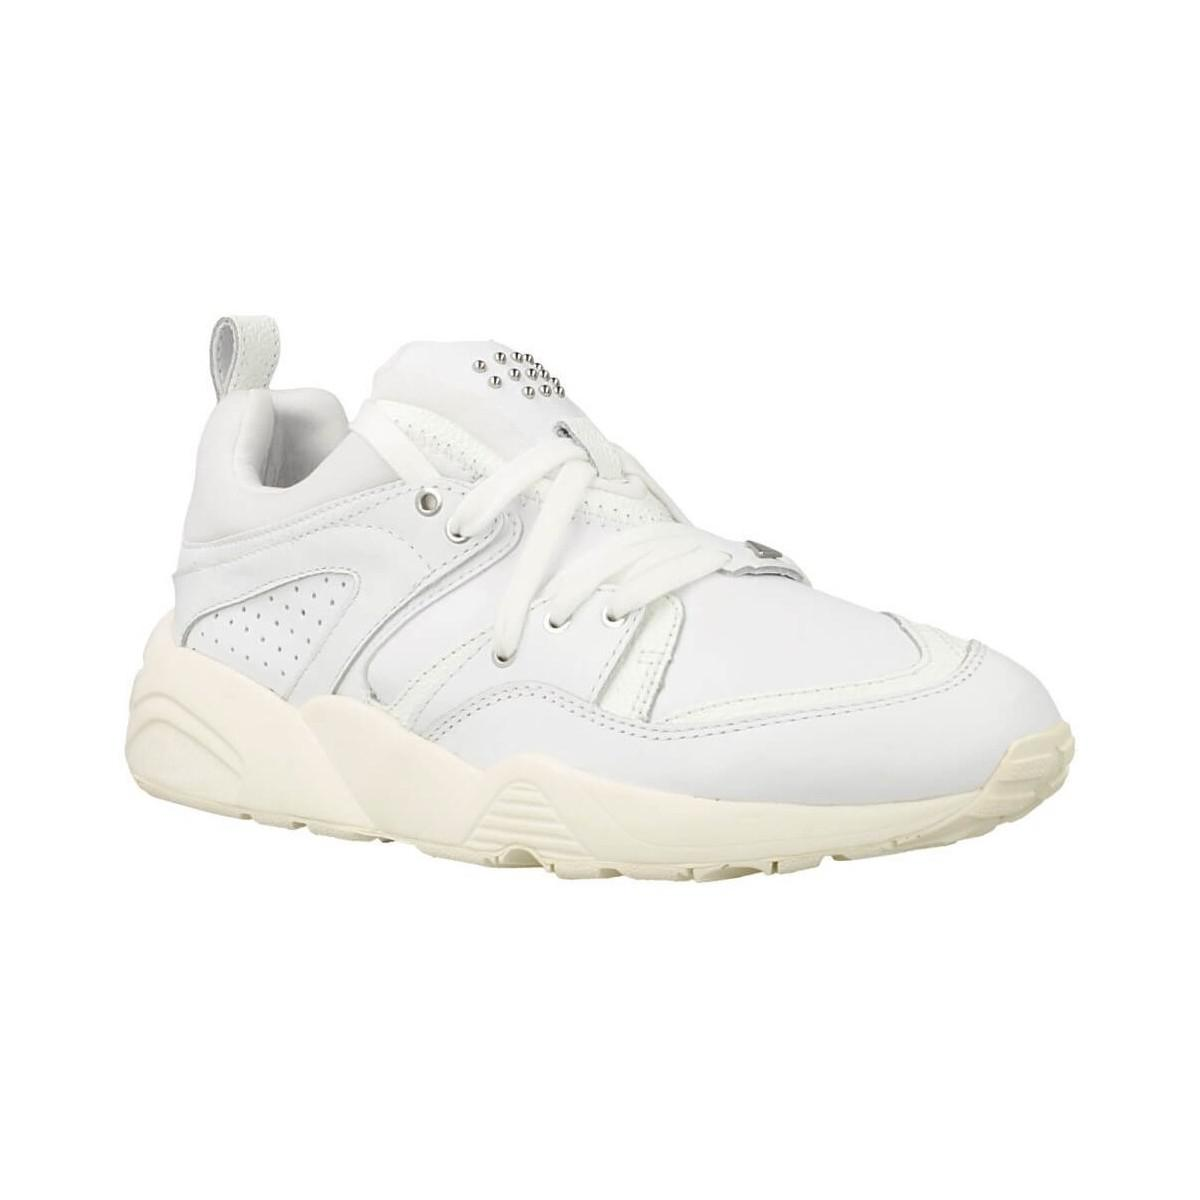 Puma Blaze Wns women's Shoes (Trainers) in Discount Finishline Buy Cheap Websites Buy Cheap Cost Cheap Cheap Online AjNFEPfVEs